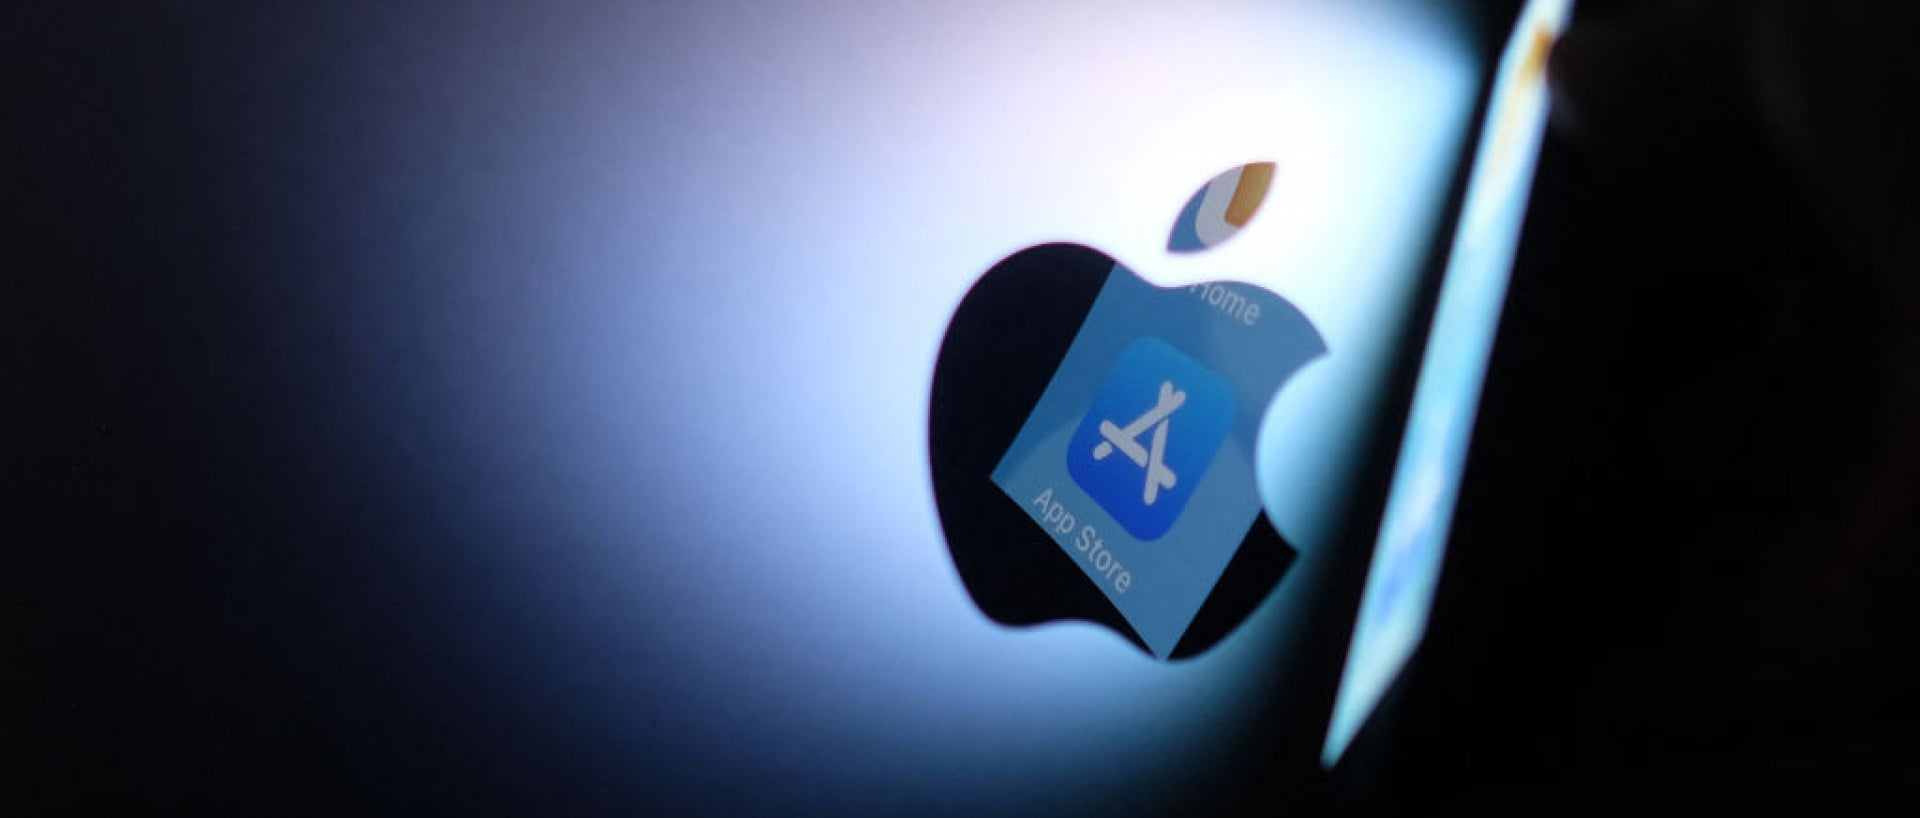 Apple logo with app store icon